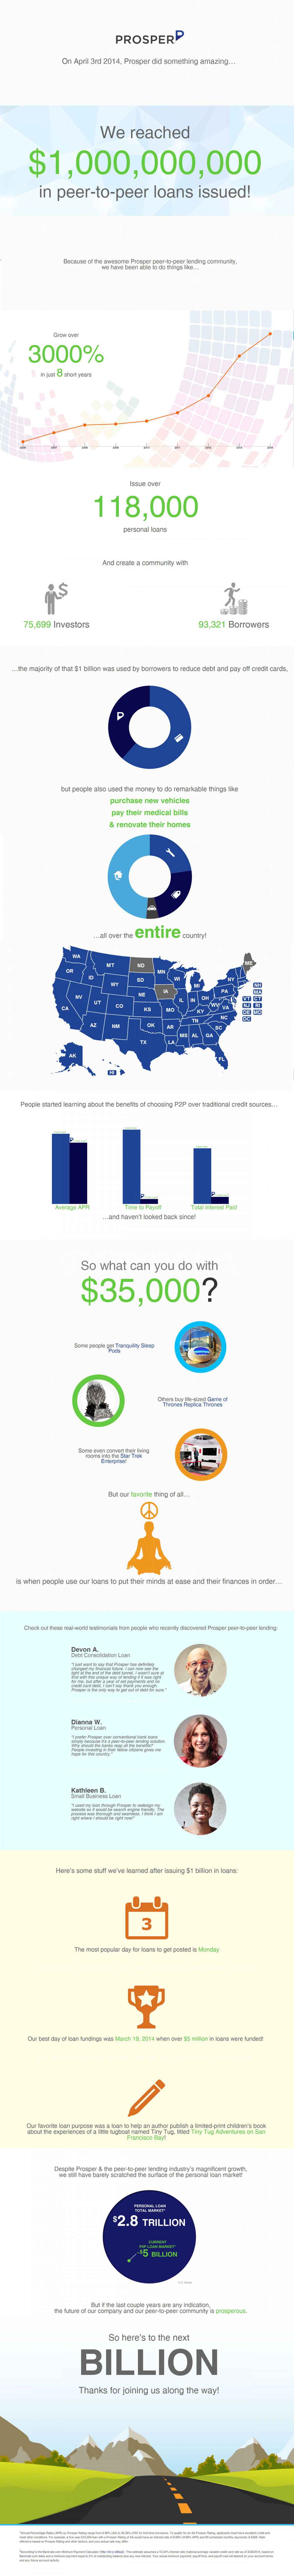 Prosper Crosses $1 Billion in Loans Funded Infographic